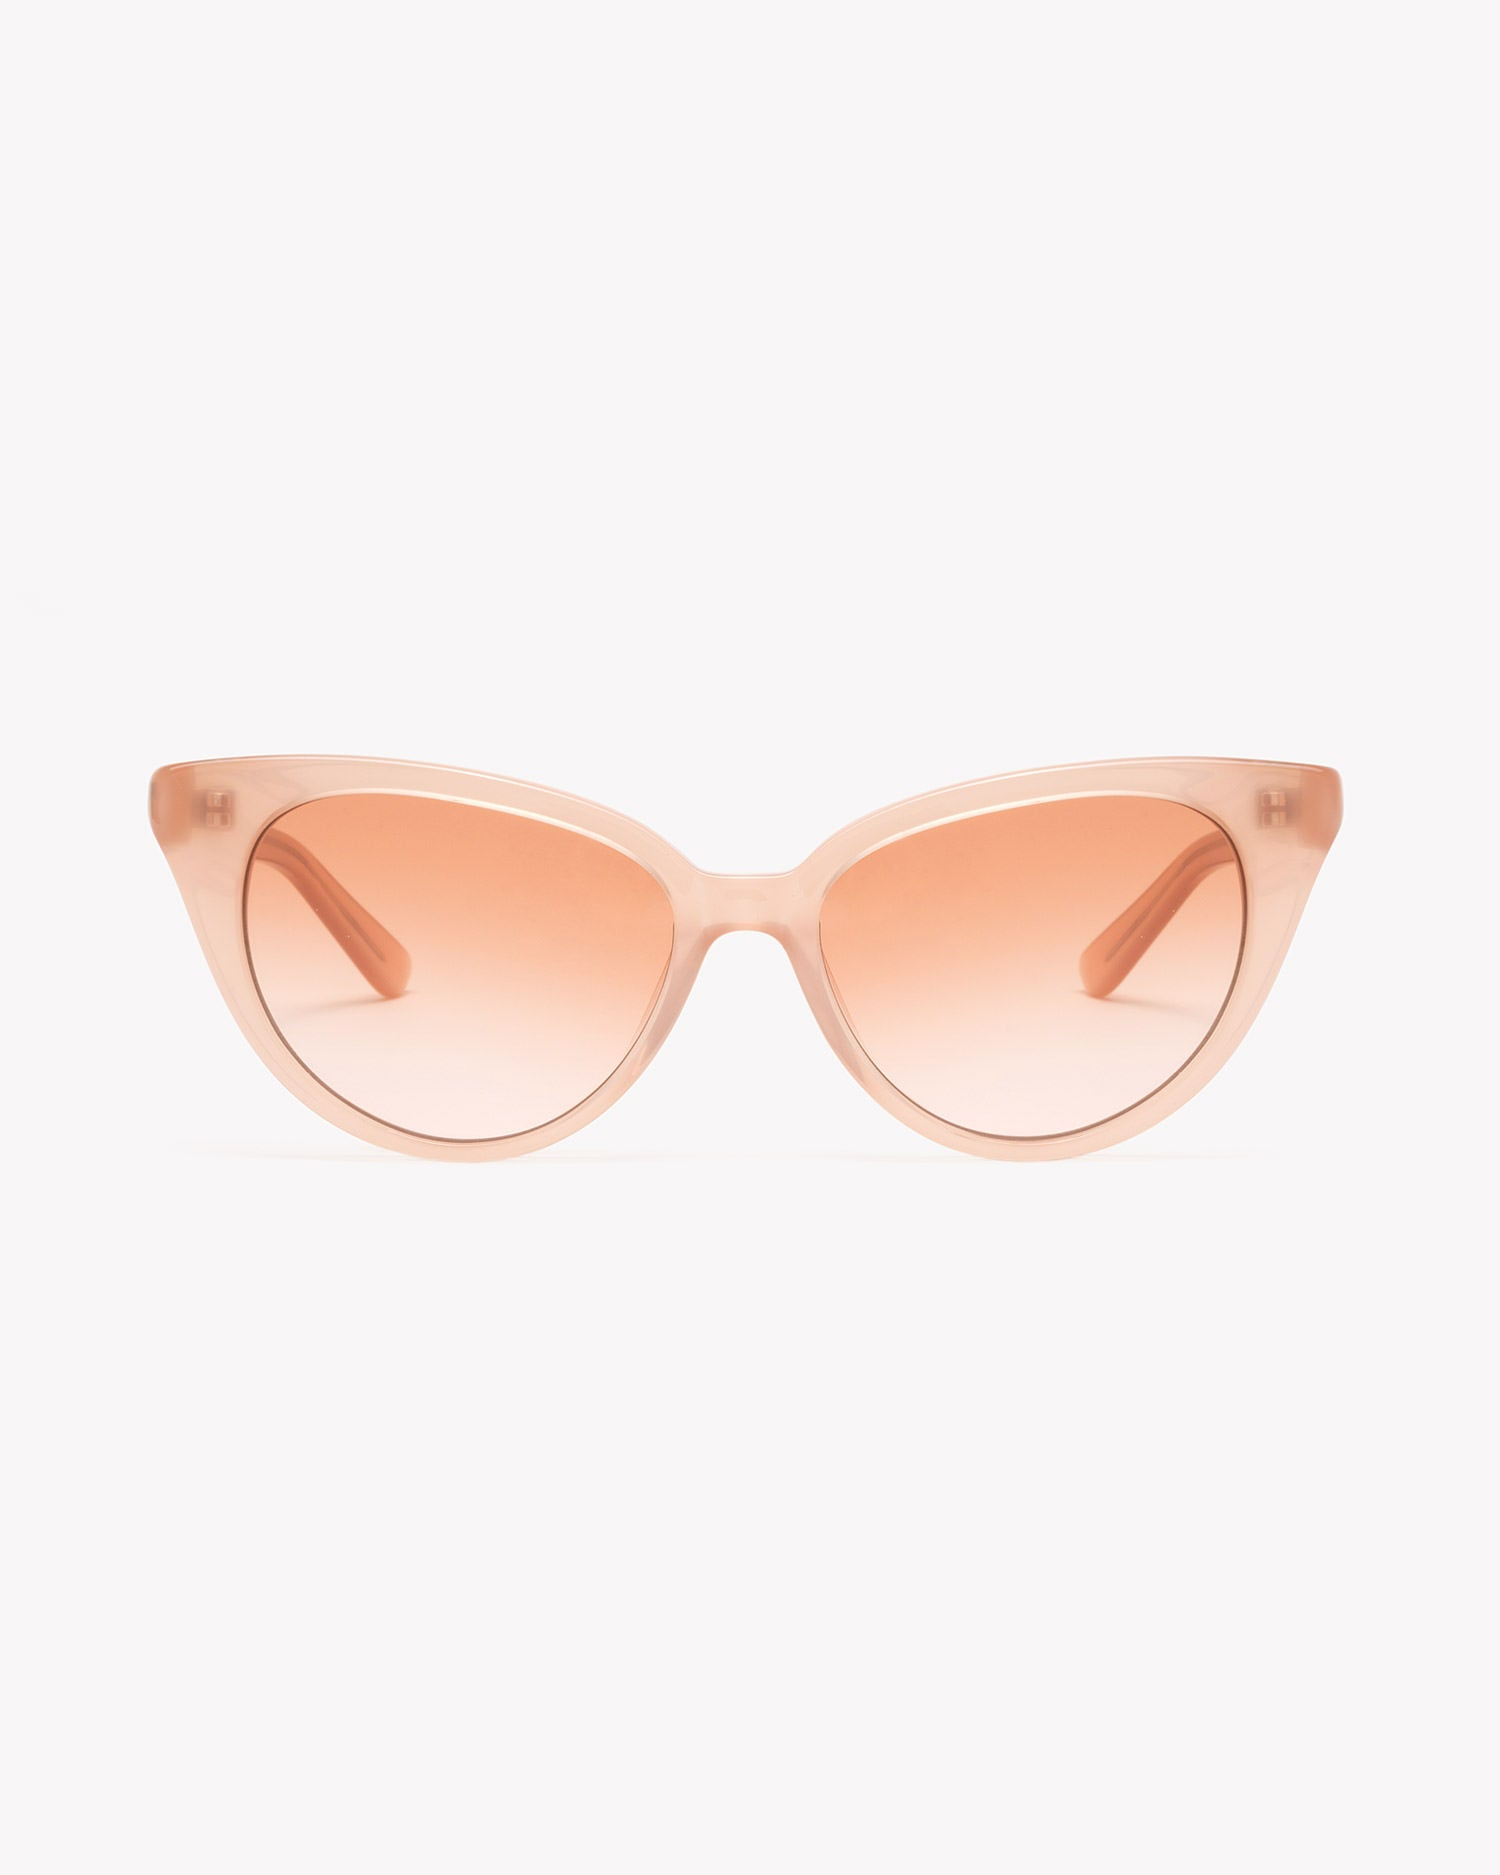 Velvet Canyon cat eye sunglasses, Cat People Peach